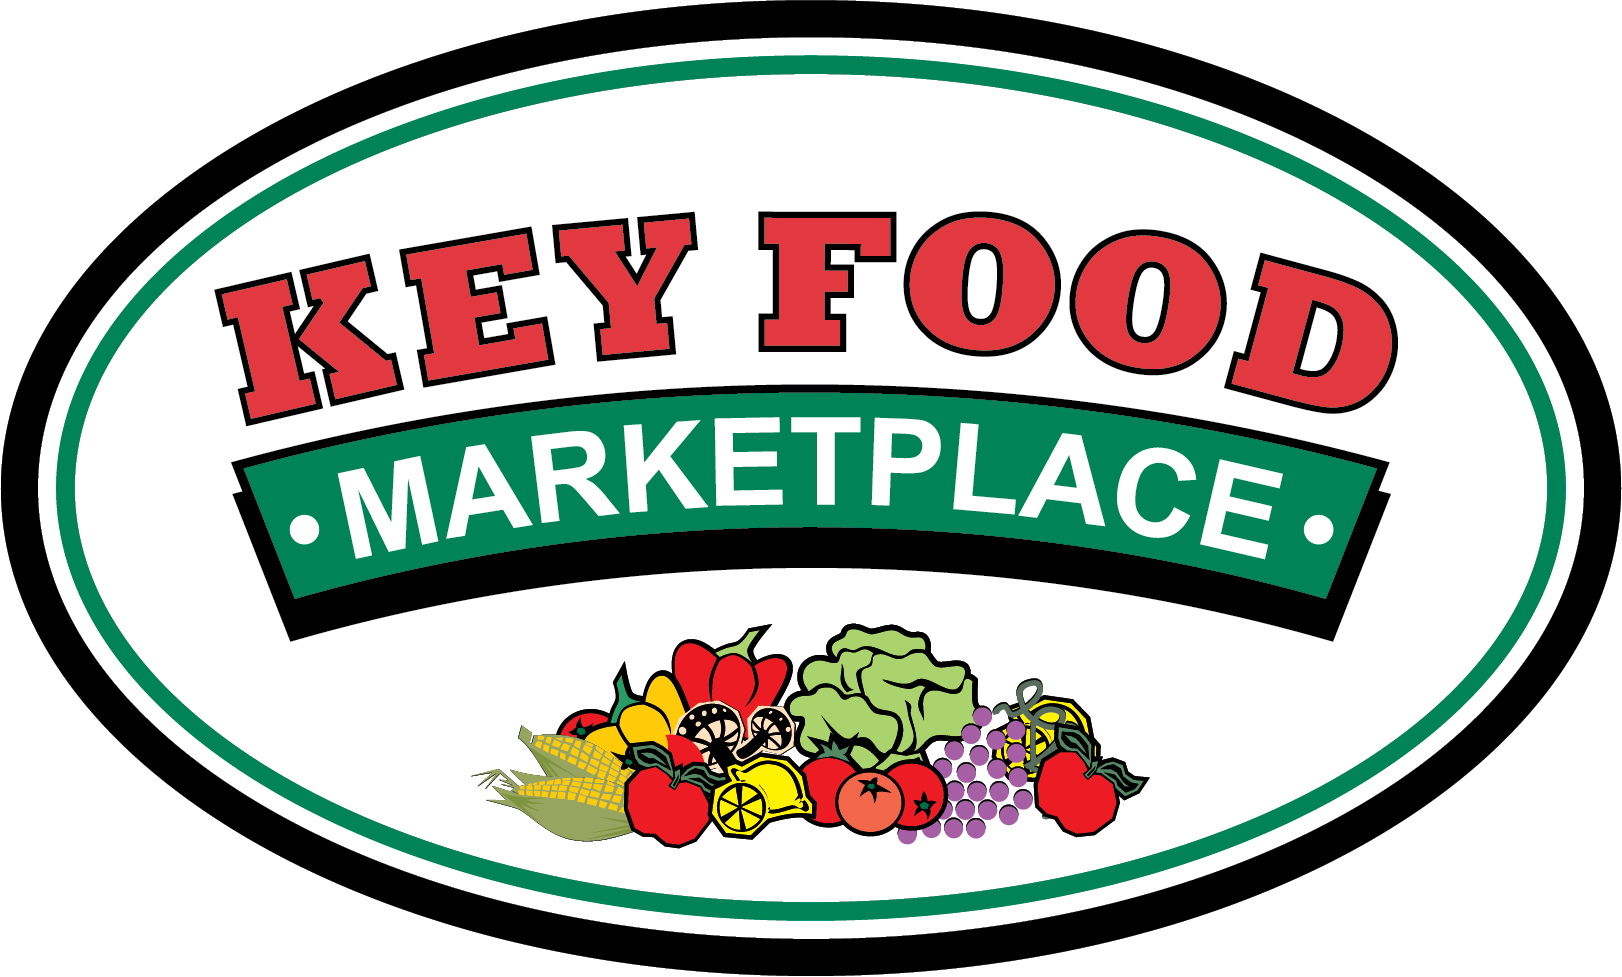 Key Food Market Place